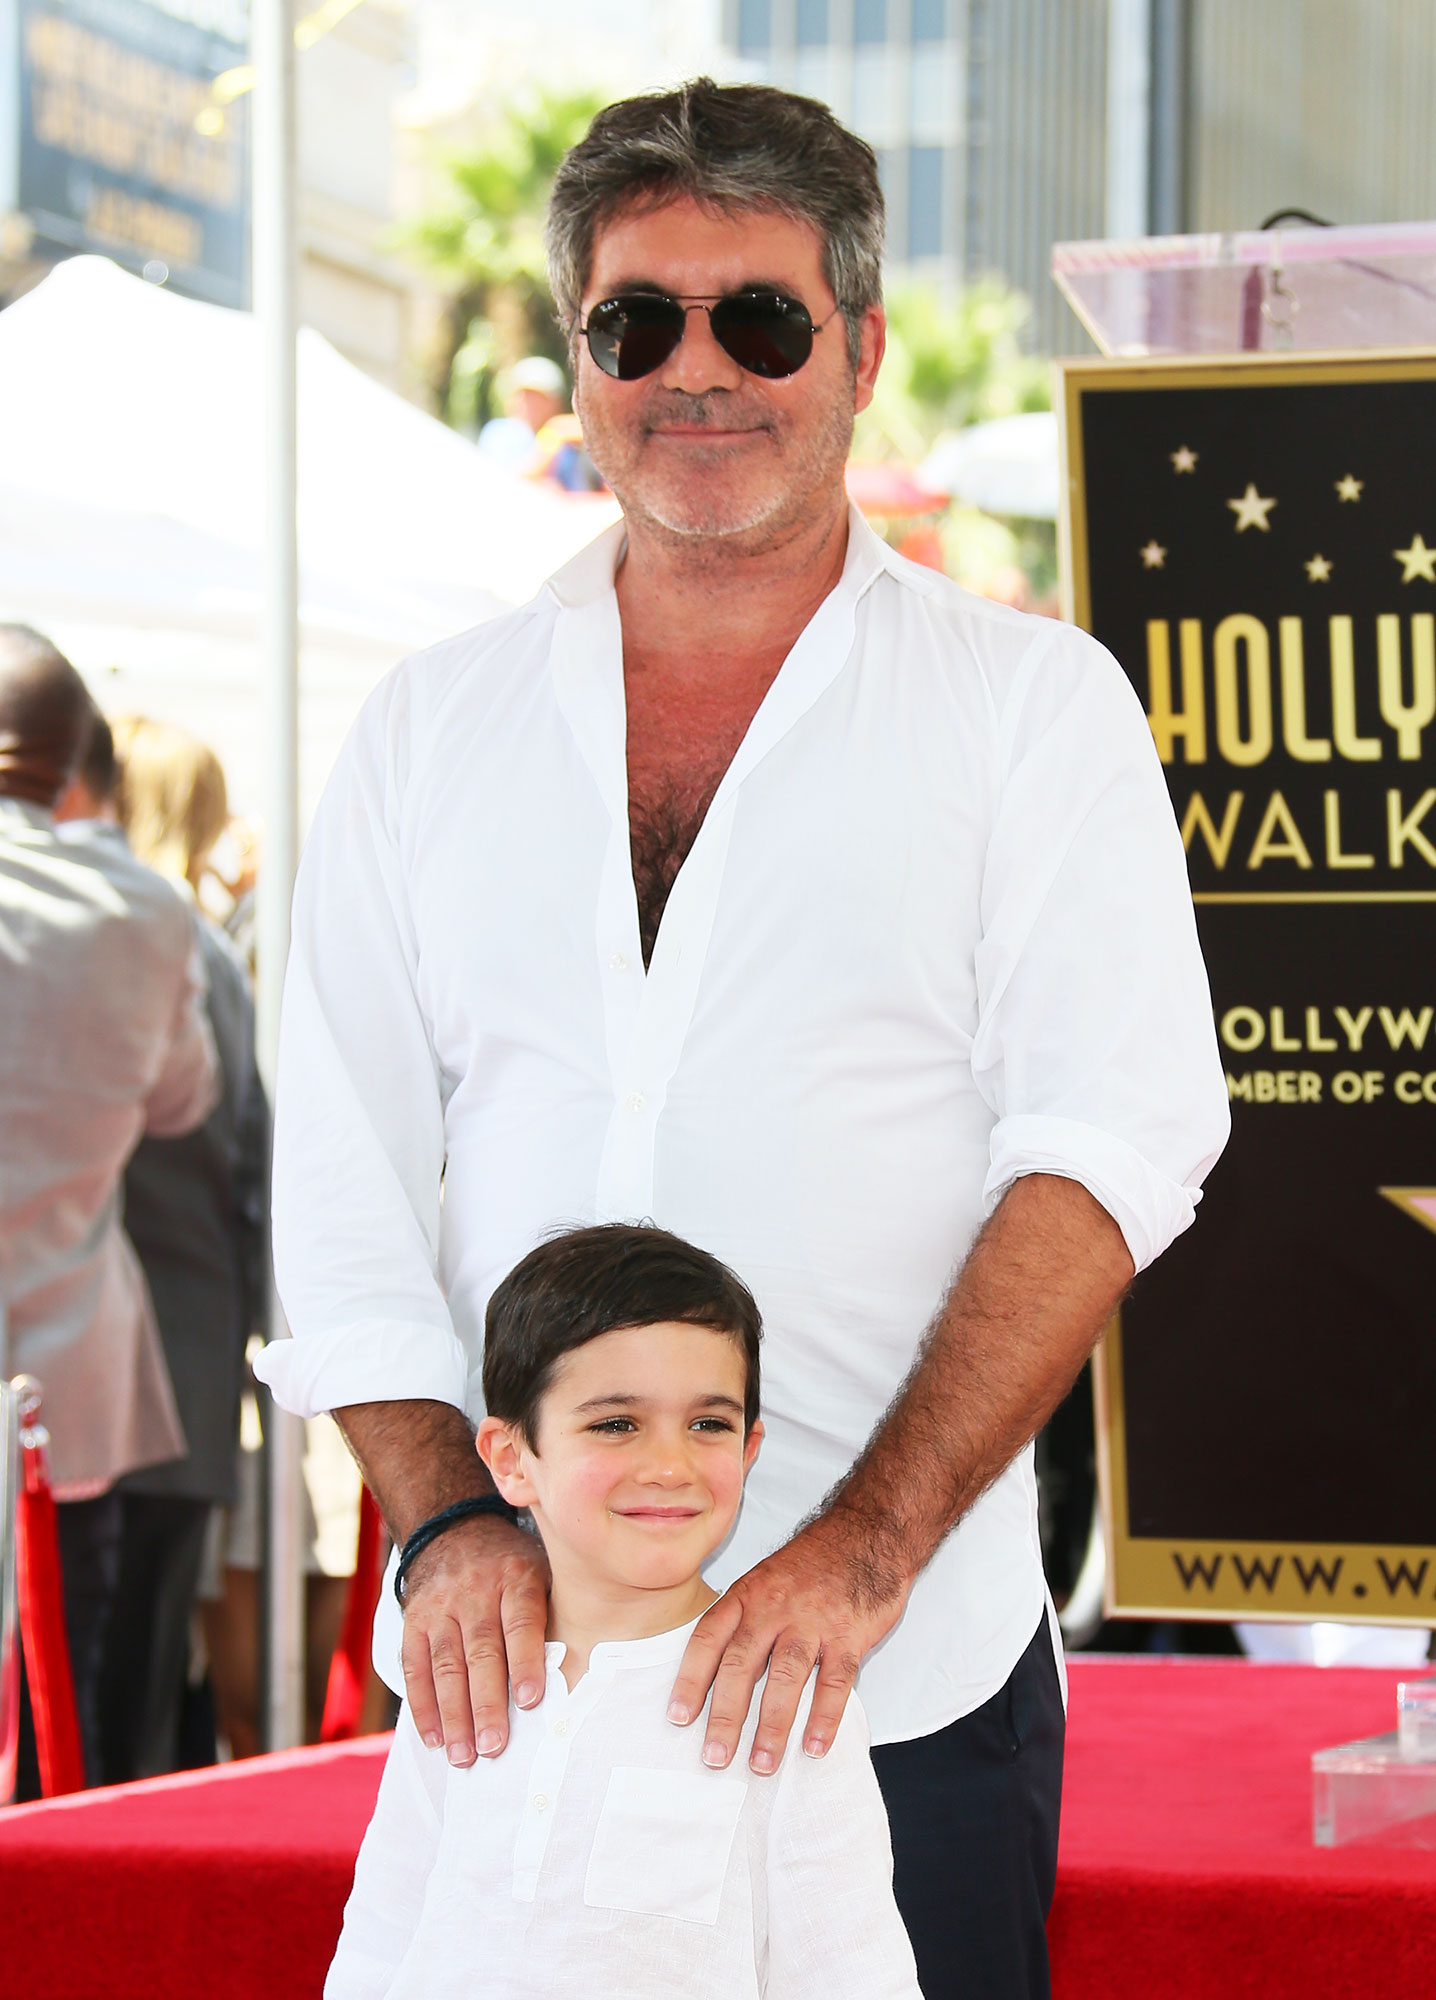 simon cowell's son doesn't know he's famous - Simon Cowell and Eric Cowell attend the ceremony honoring Simon Cowell with a Star on The Hollywood Walk of Fame held on August 22, 2018 in Hollywood, California.